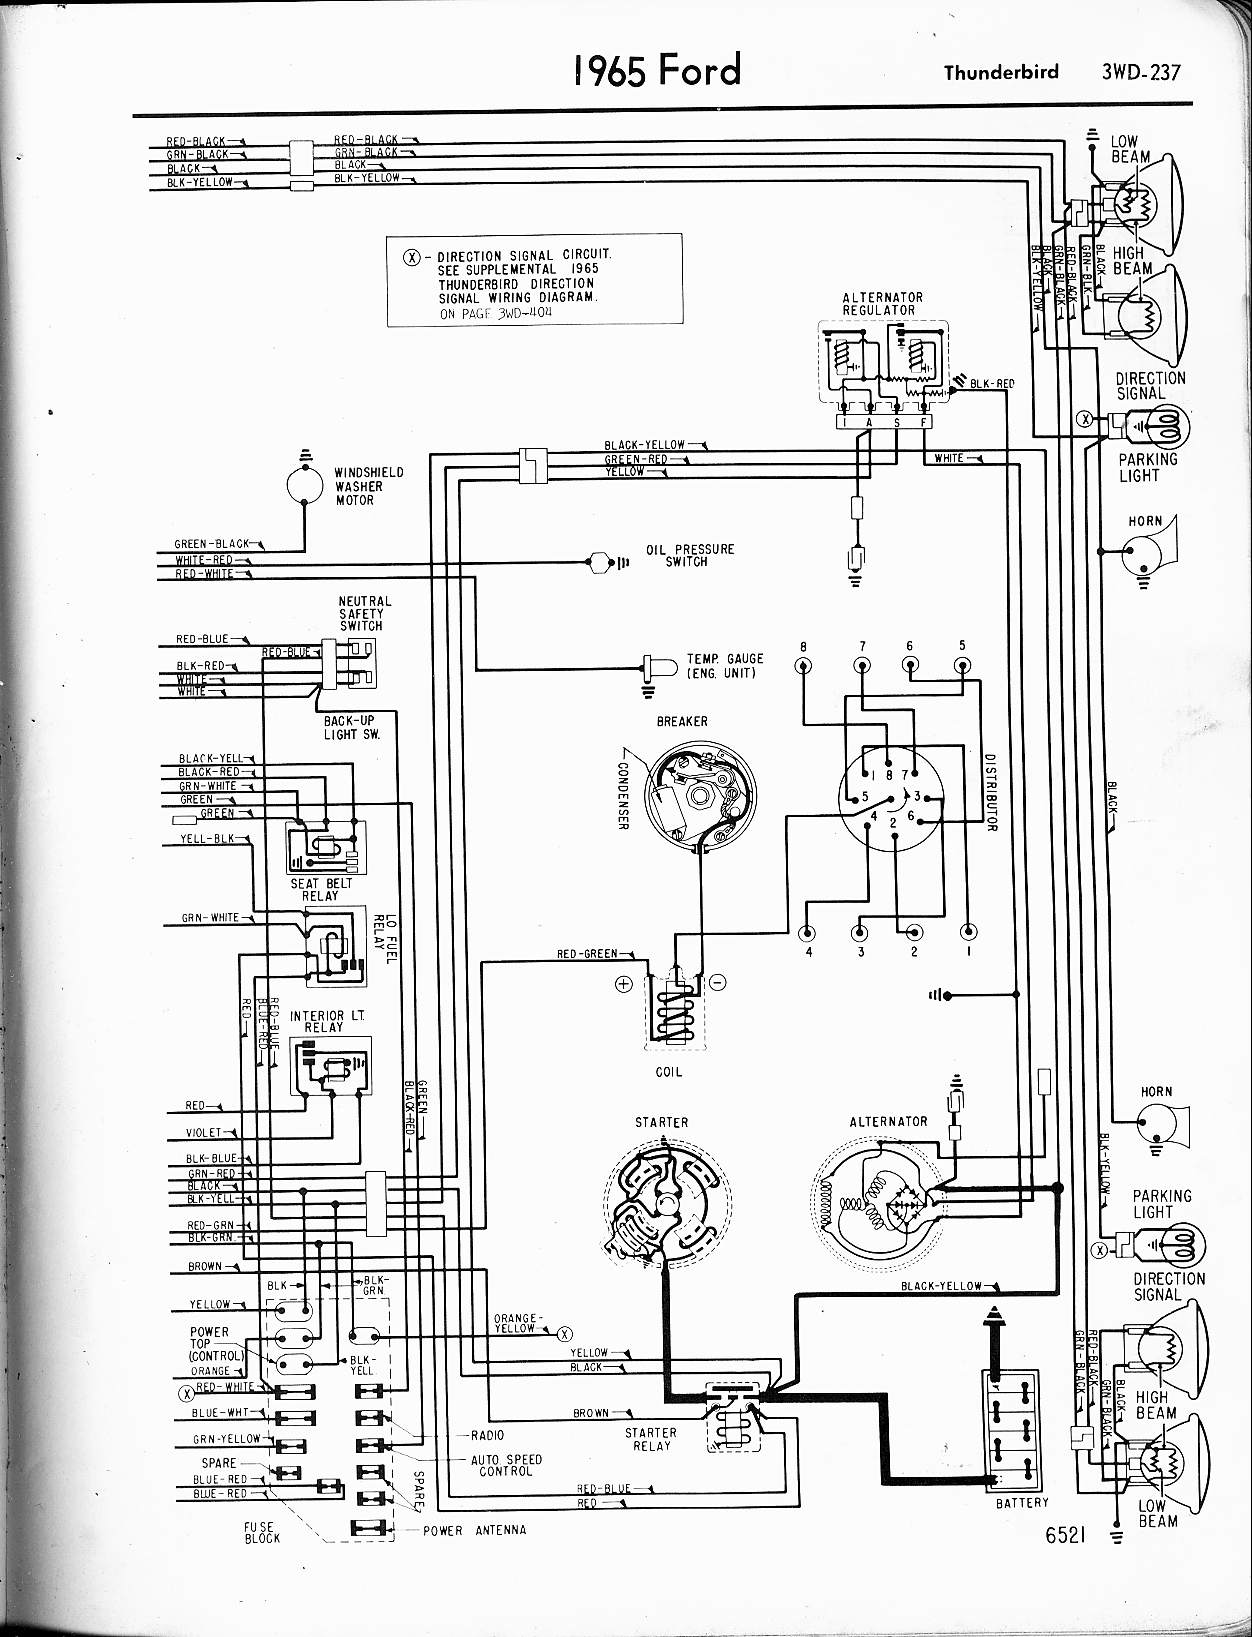 1997 Ford Thunderbird Engine Diagram Wiring Libraries 1976 Van 1965 Fuse Box Todays1962 Library